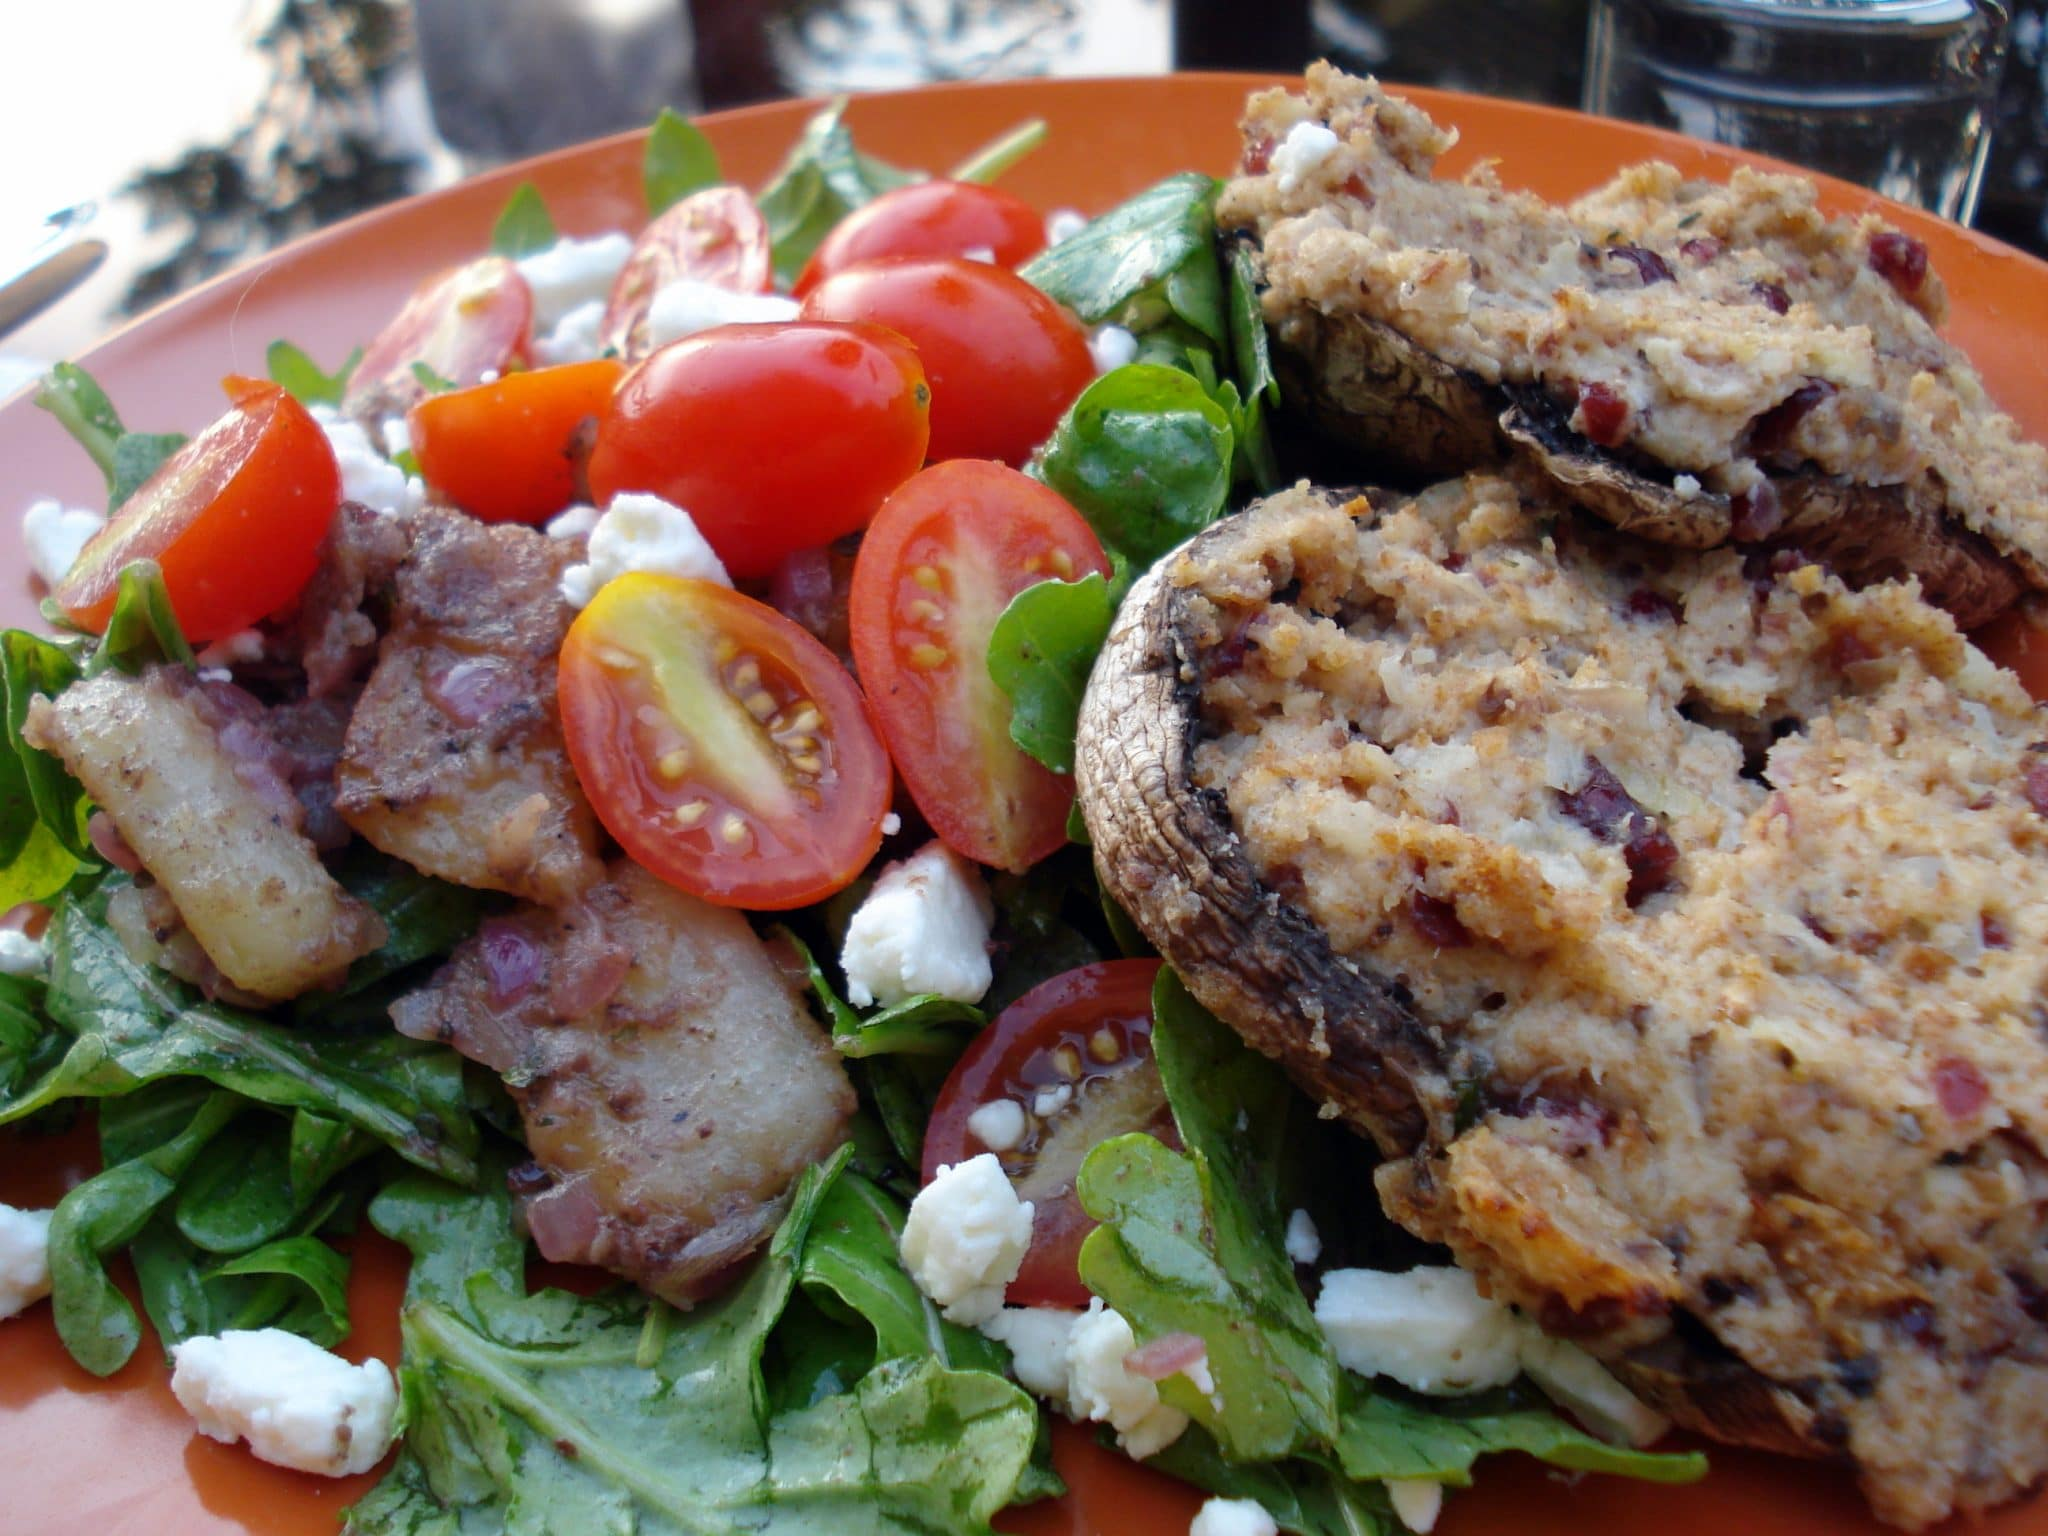 Close up of Goat Cheese and Rosemary Stuffed Portobello Mushrooms with side salad